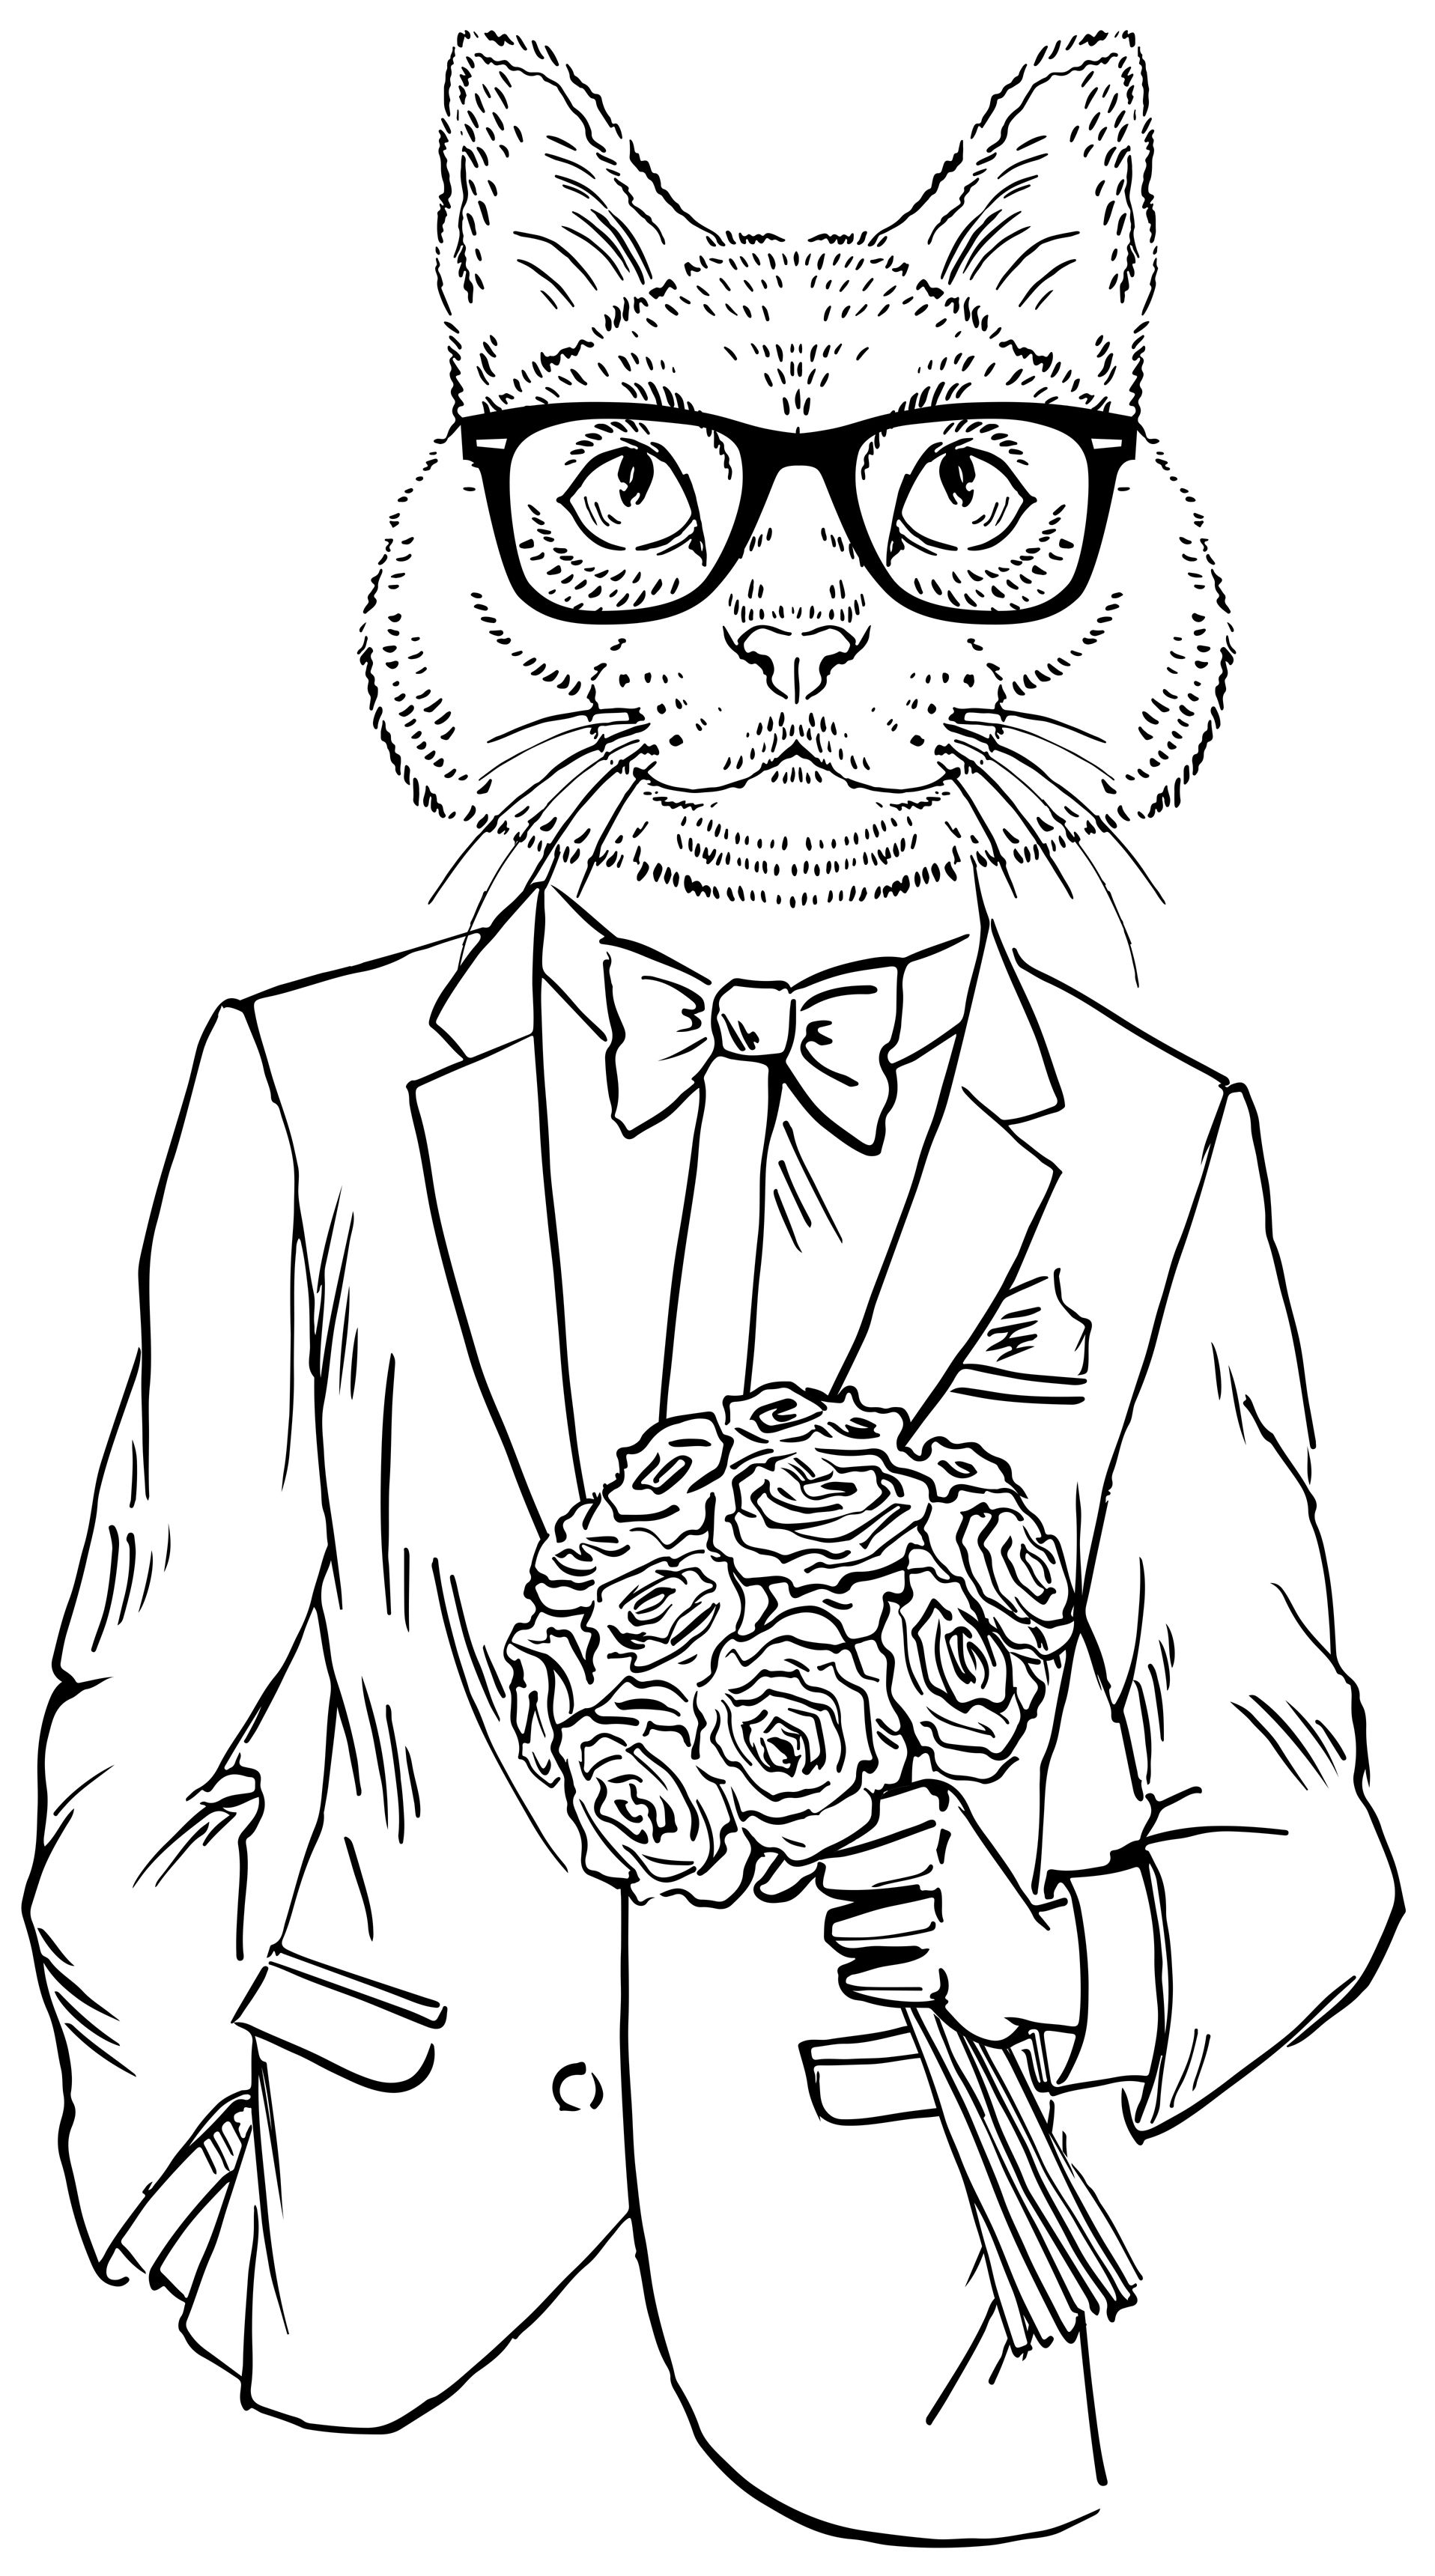 tumblr coloring pages for adults - photo#27